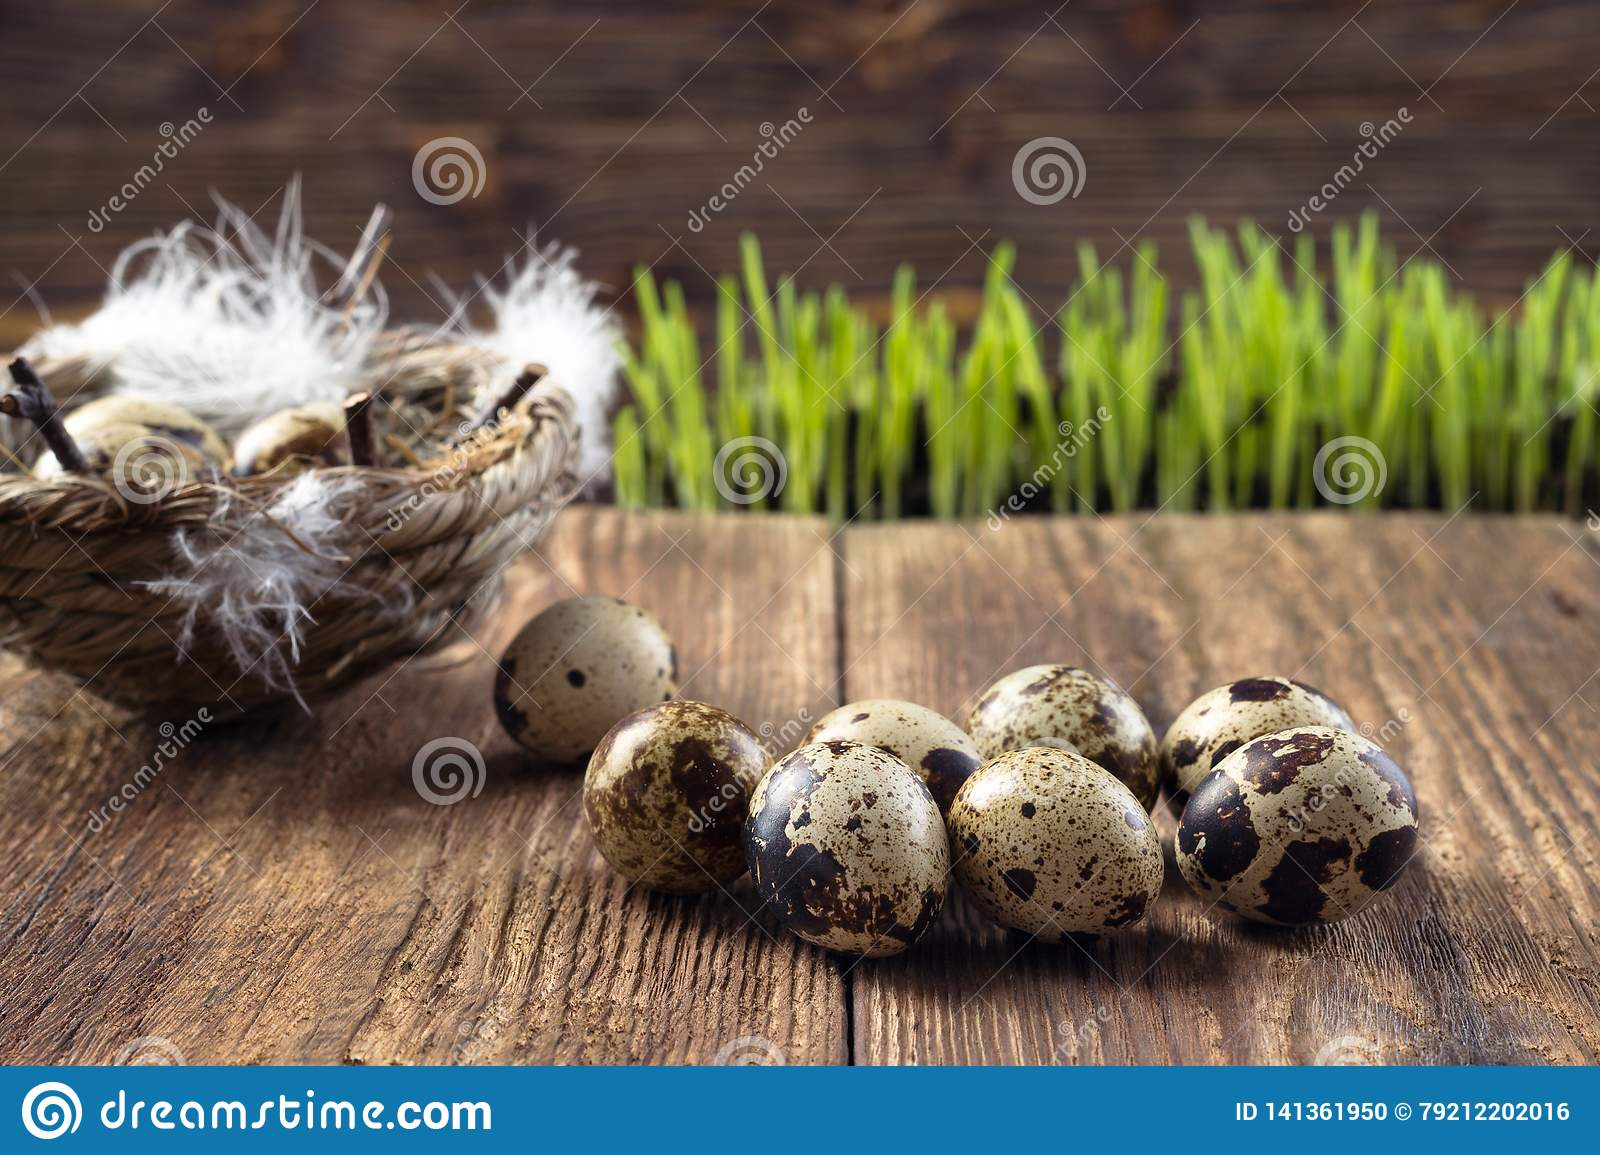 Quail eggs in a nest on a wooden table